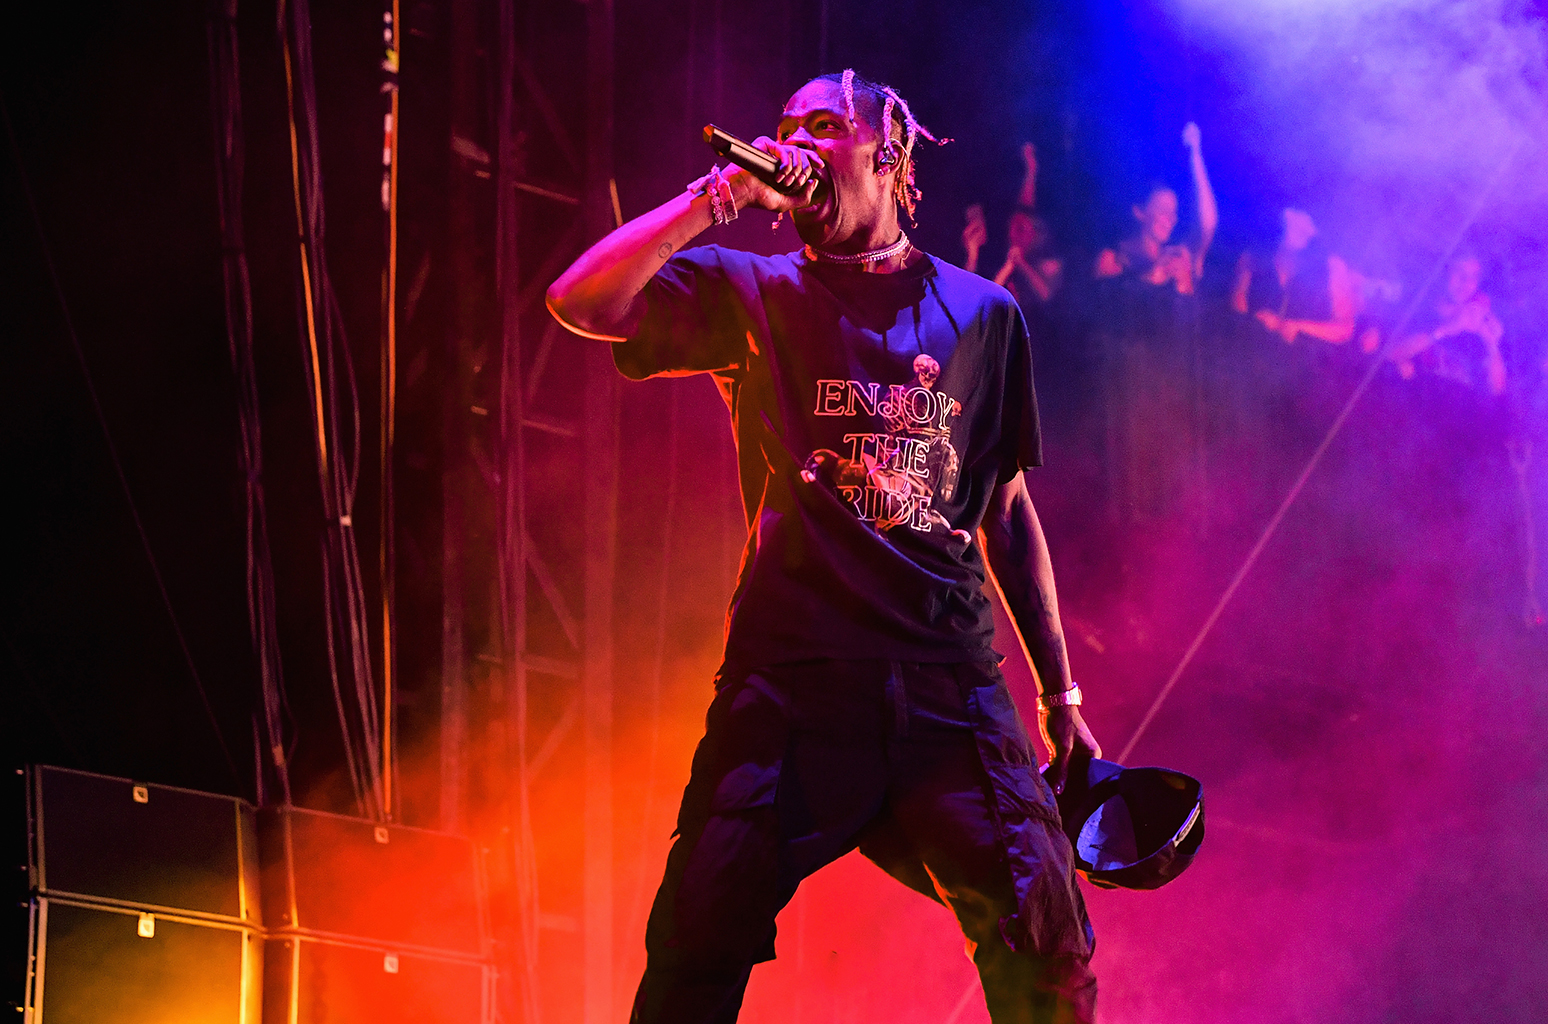 a776e620ce9c All fans of Travis Scott have been trooping to get their tickets online, as  Travis has promised to give a never seen before experience to everyone.